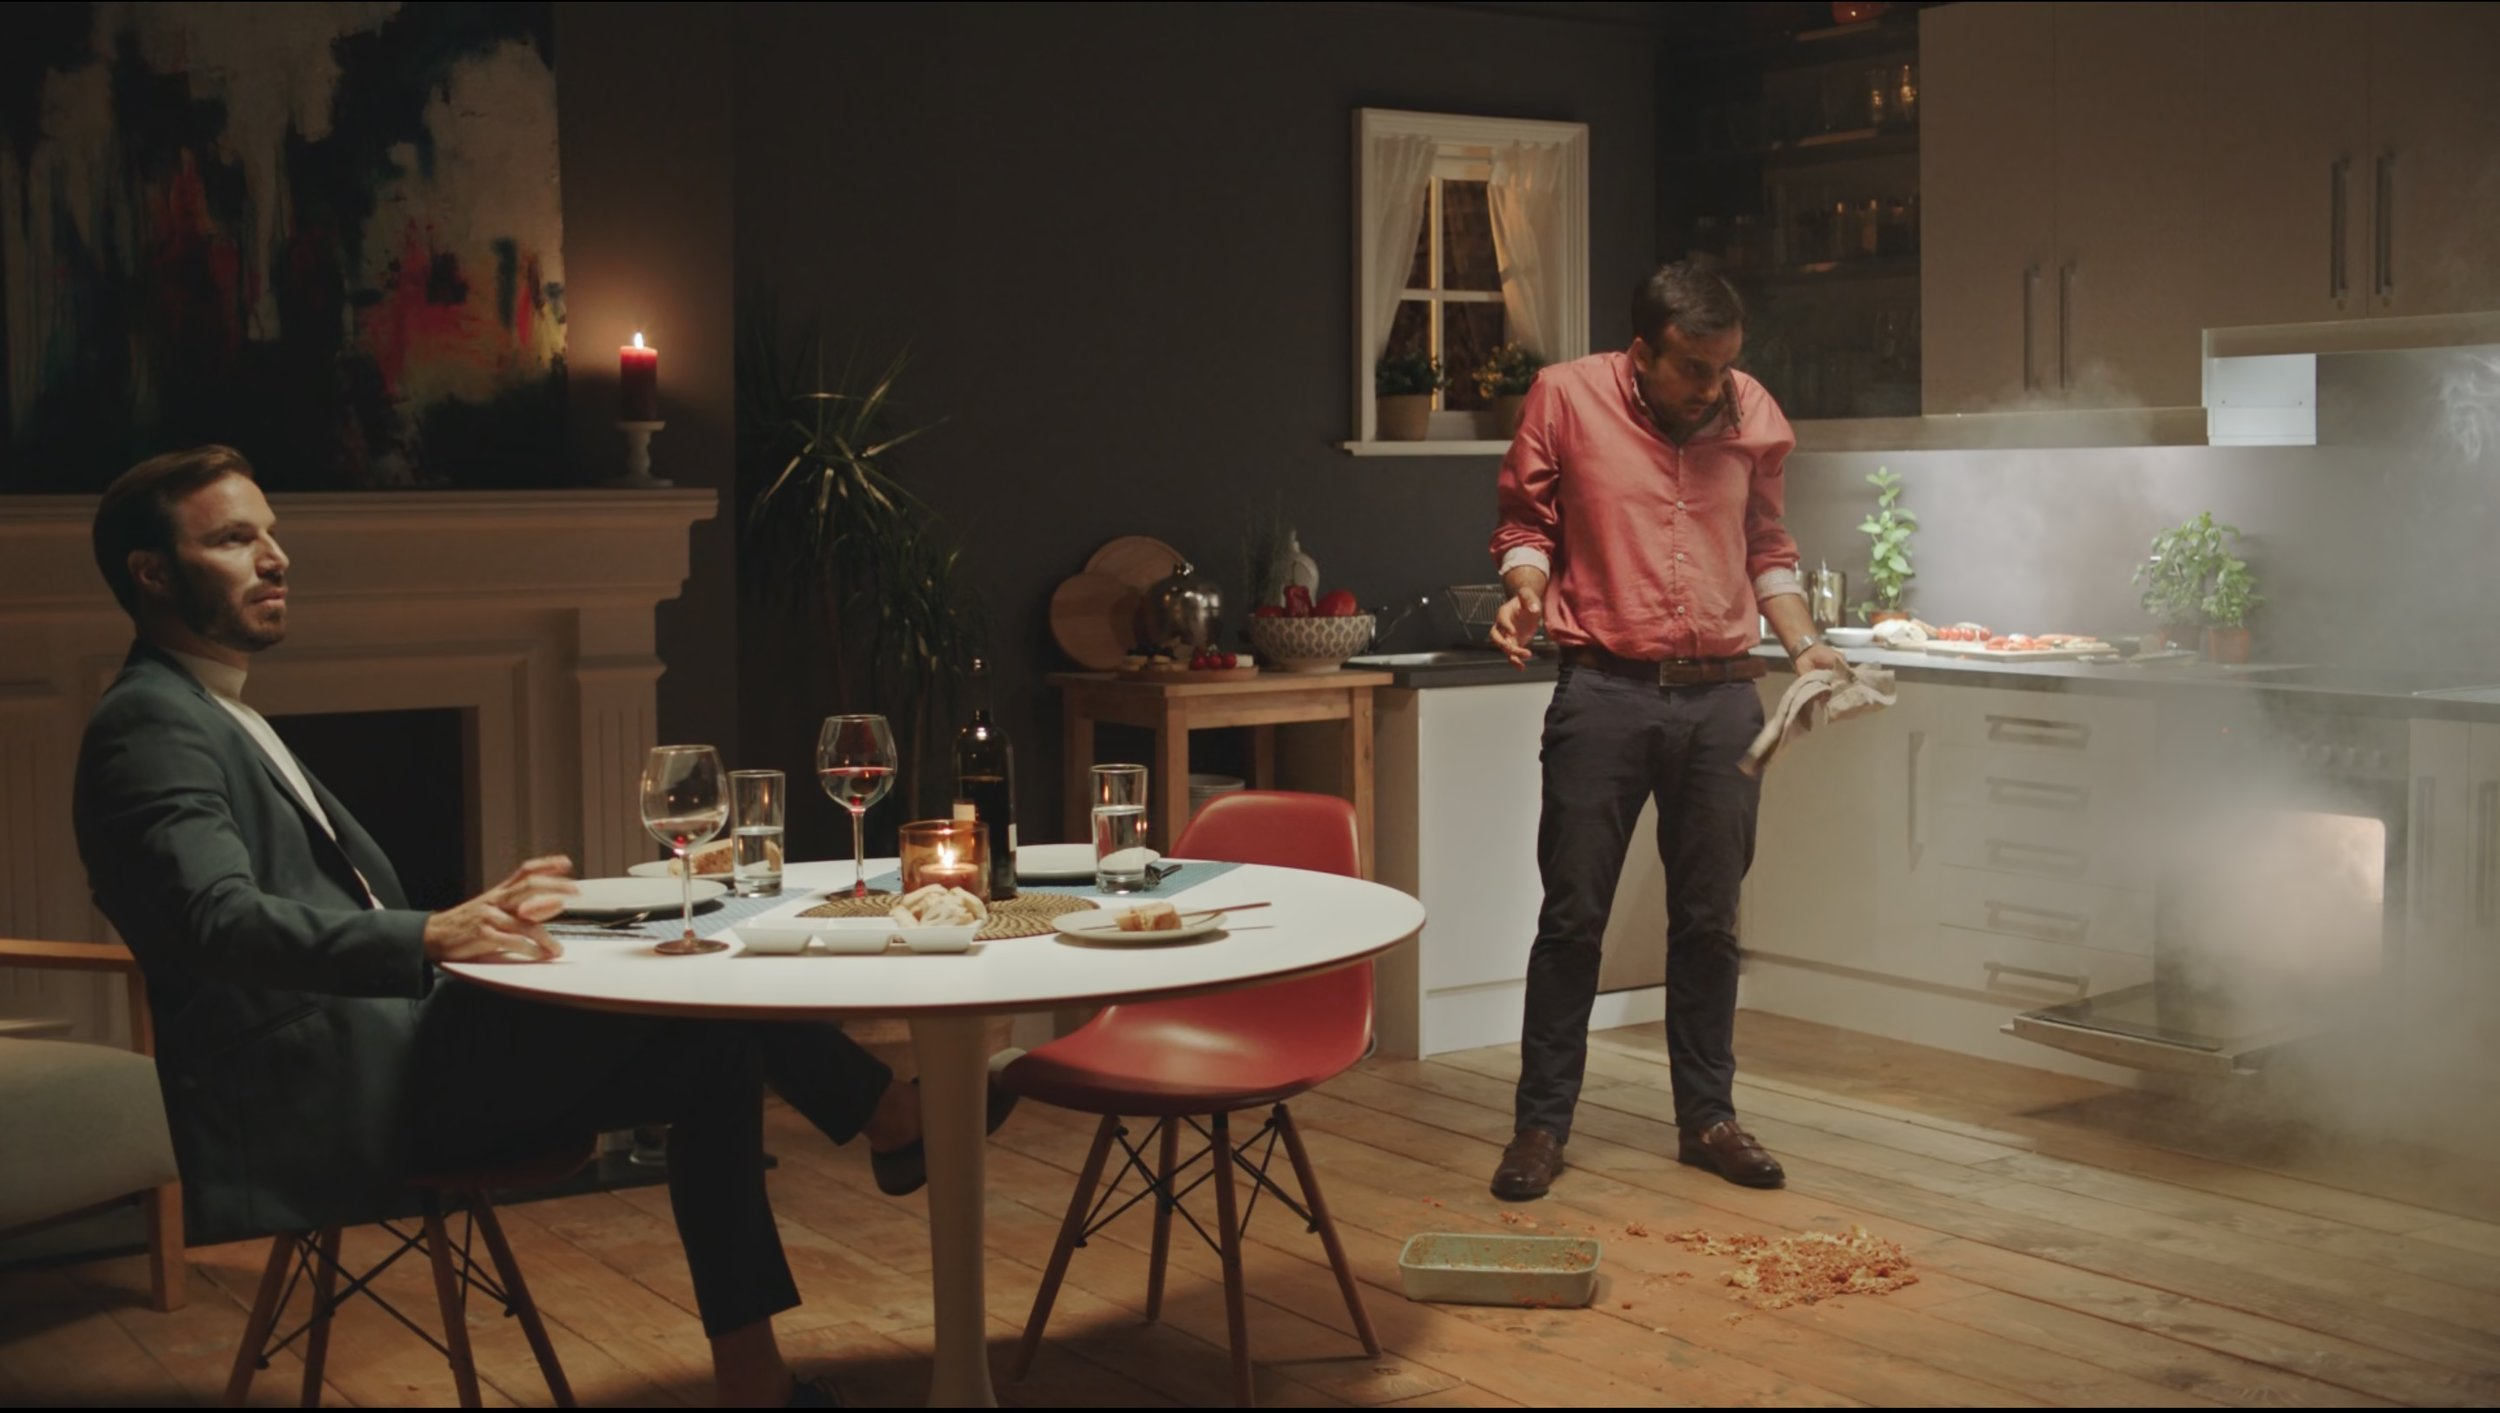 Dettol / Director Christopher Hill - Creative Researcher Fran Odim-Loughlin